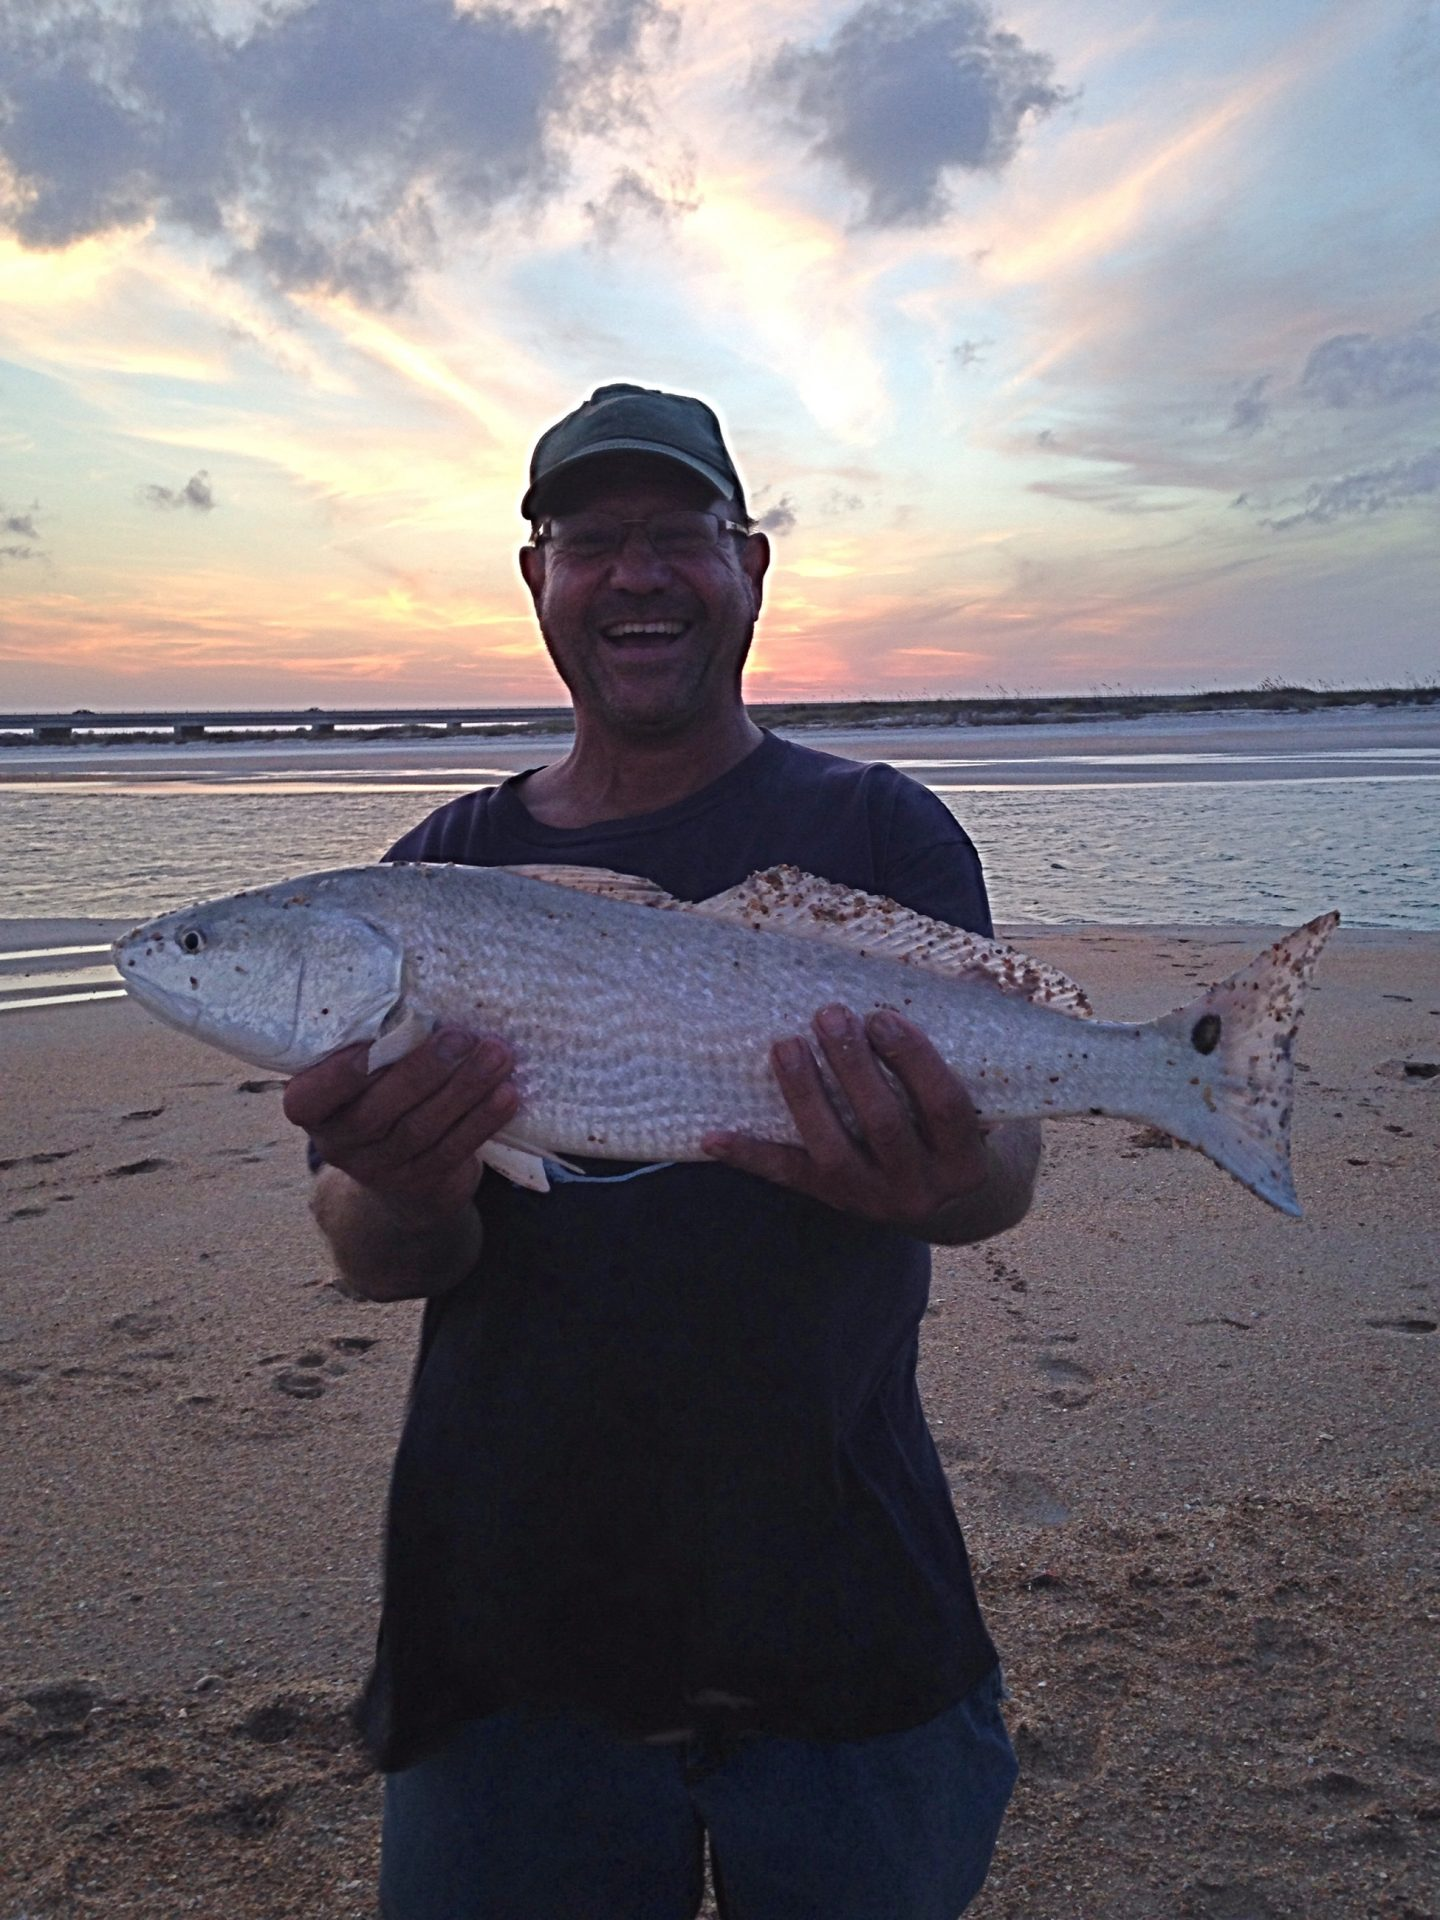 From infiltrating the freemasons, running over vultures , rescuing guys blocking rt cabinets , and this keeper redfish caught without a reel .Good memories . Rest In Peace my friend .